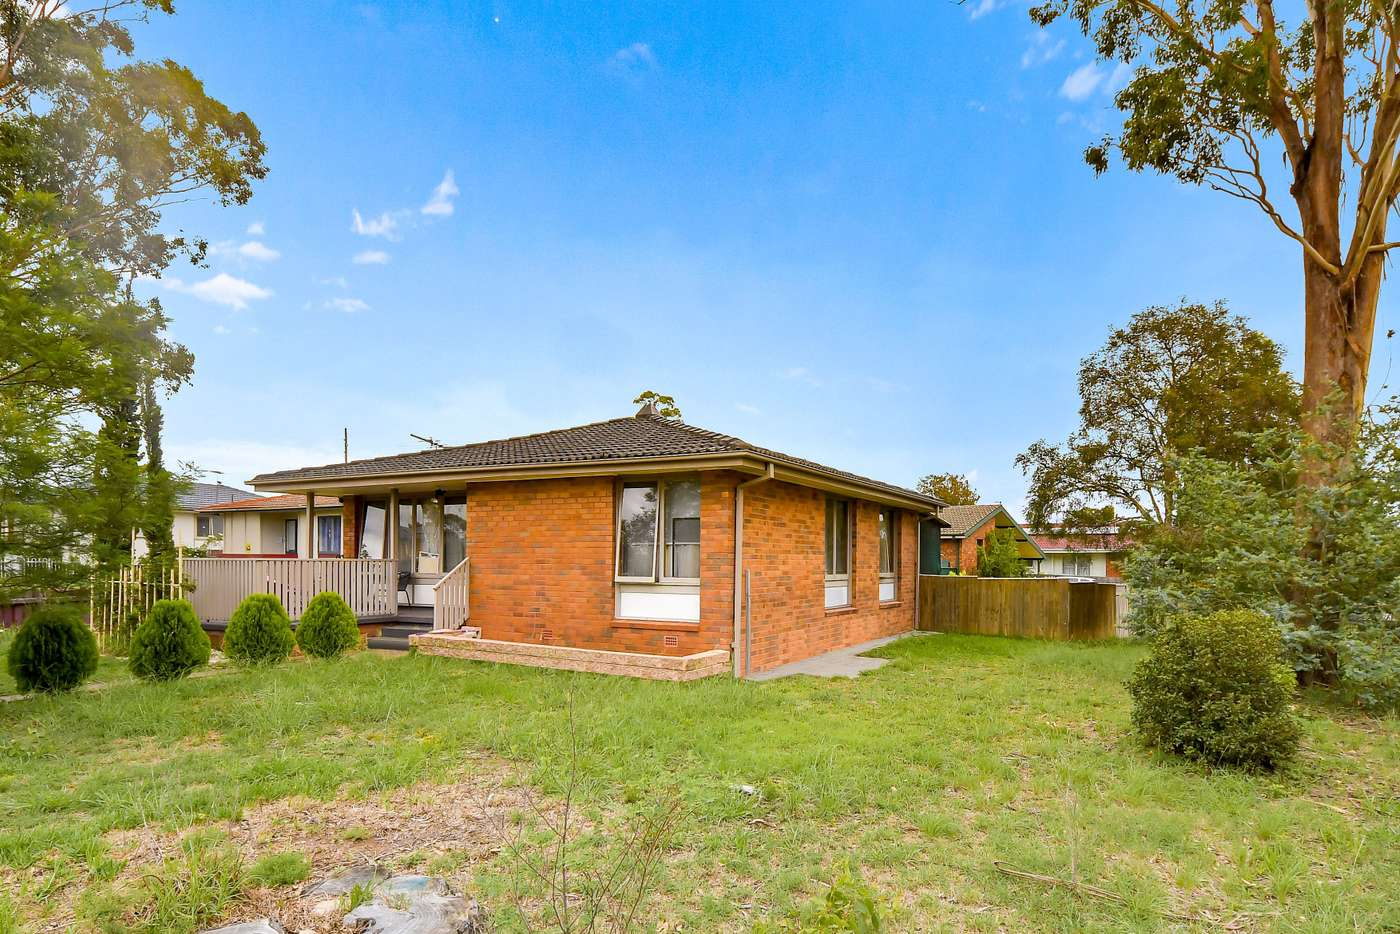 Main view of Homely house listing, 2 Evelyn Street, Macquarie Fields NSW 2564